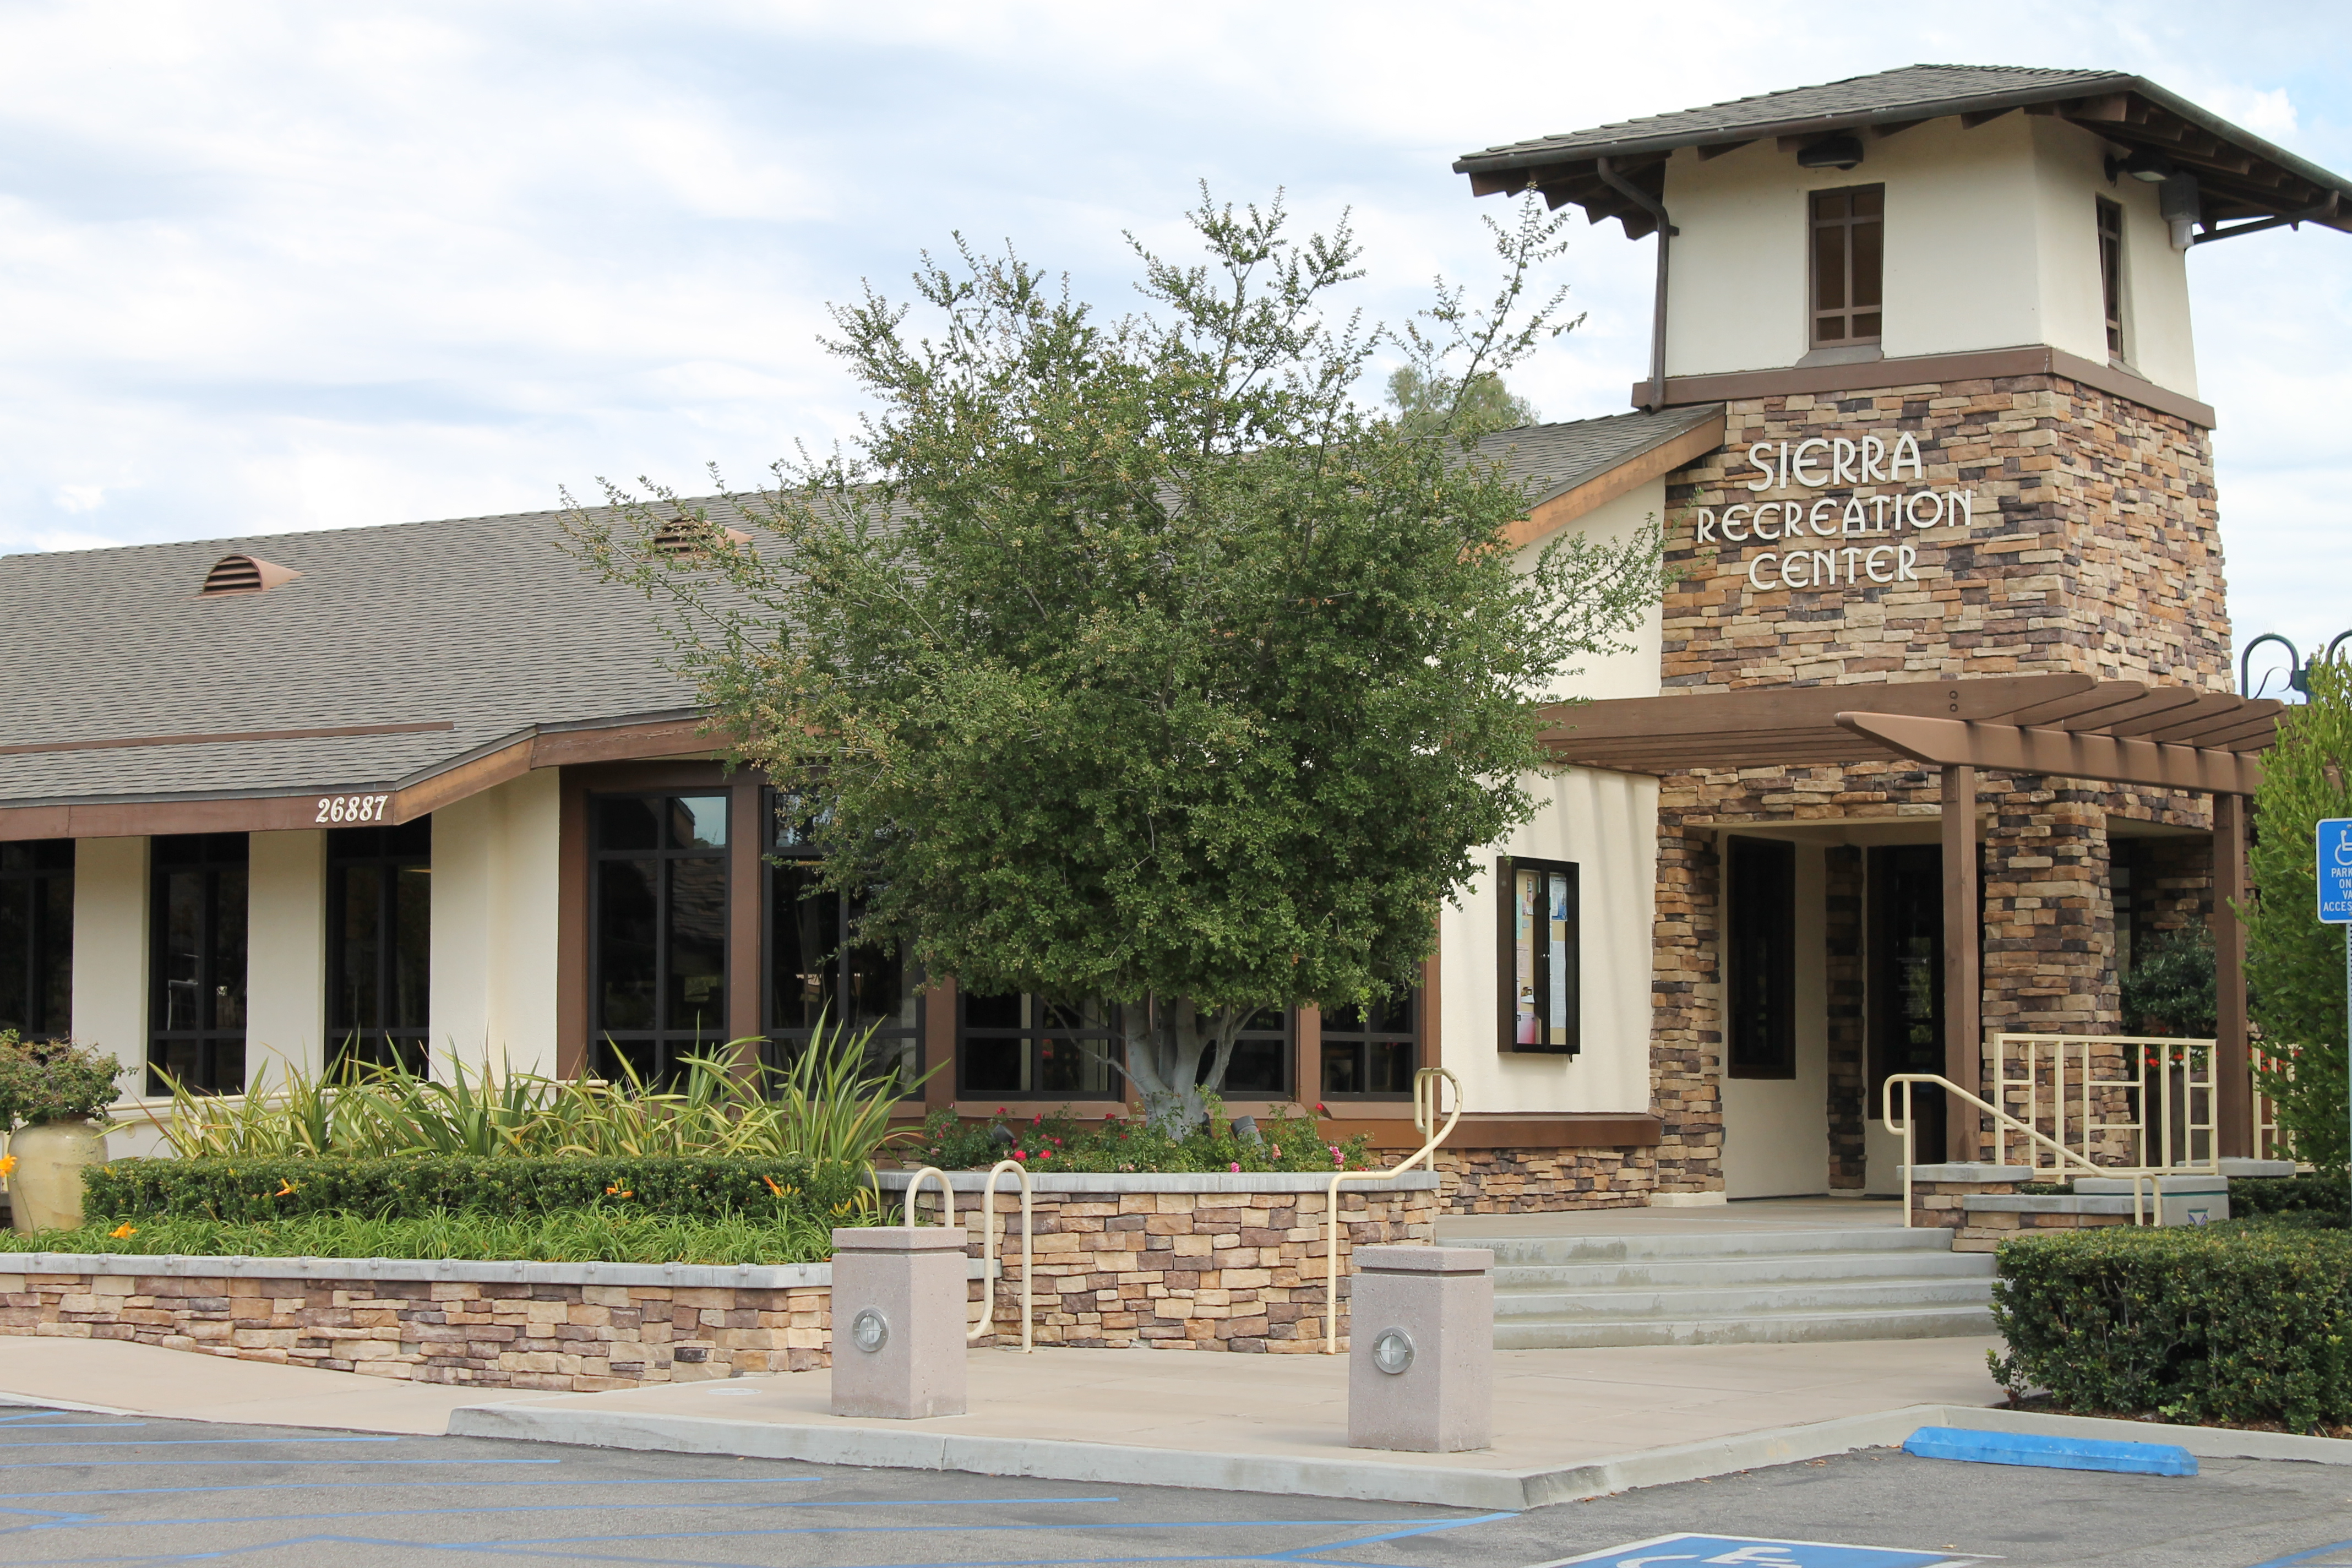 Sierra Recreation Center